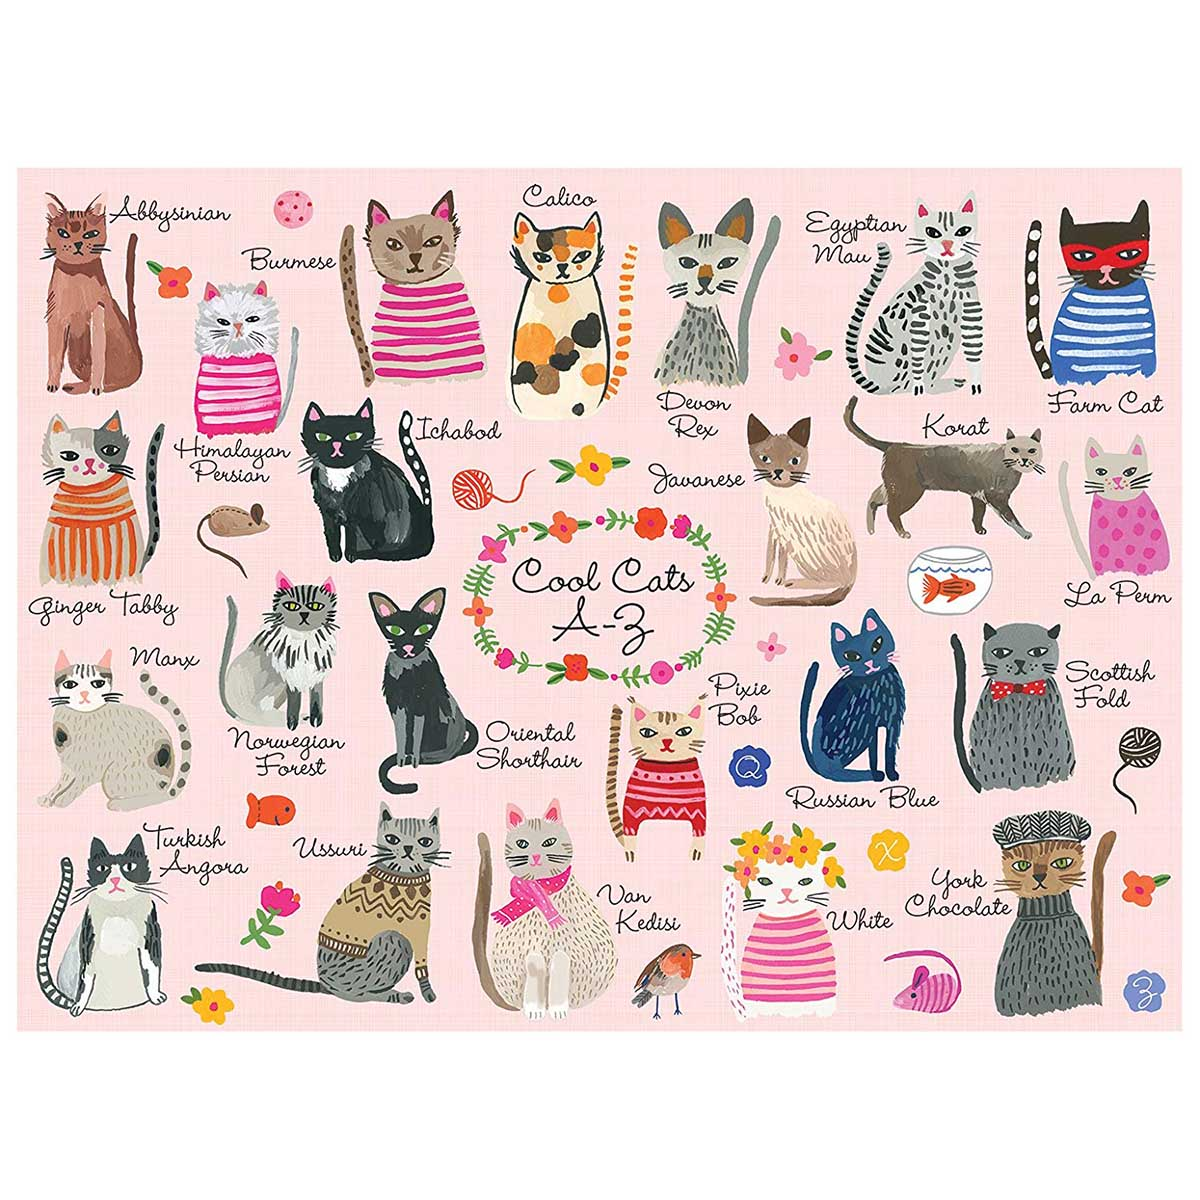 Cool Cats A-Z Cats Jigsaw Puzzle